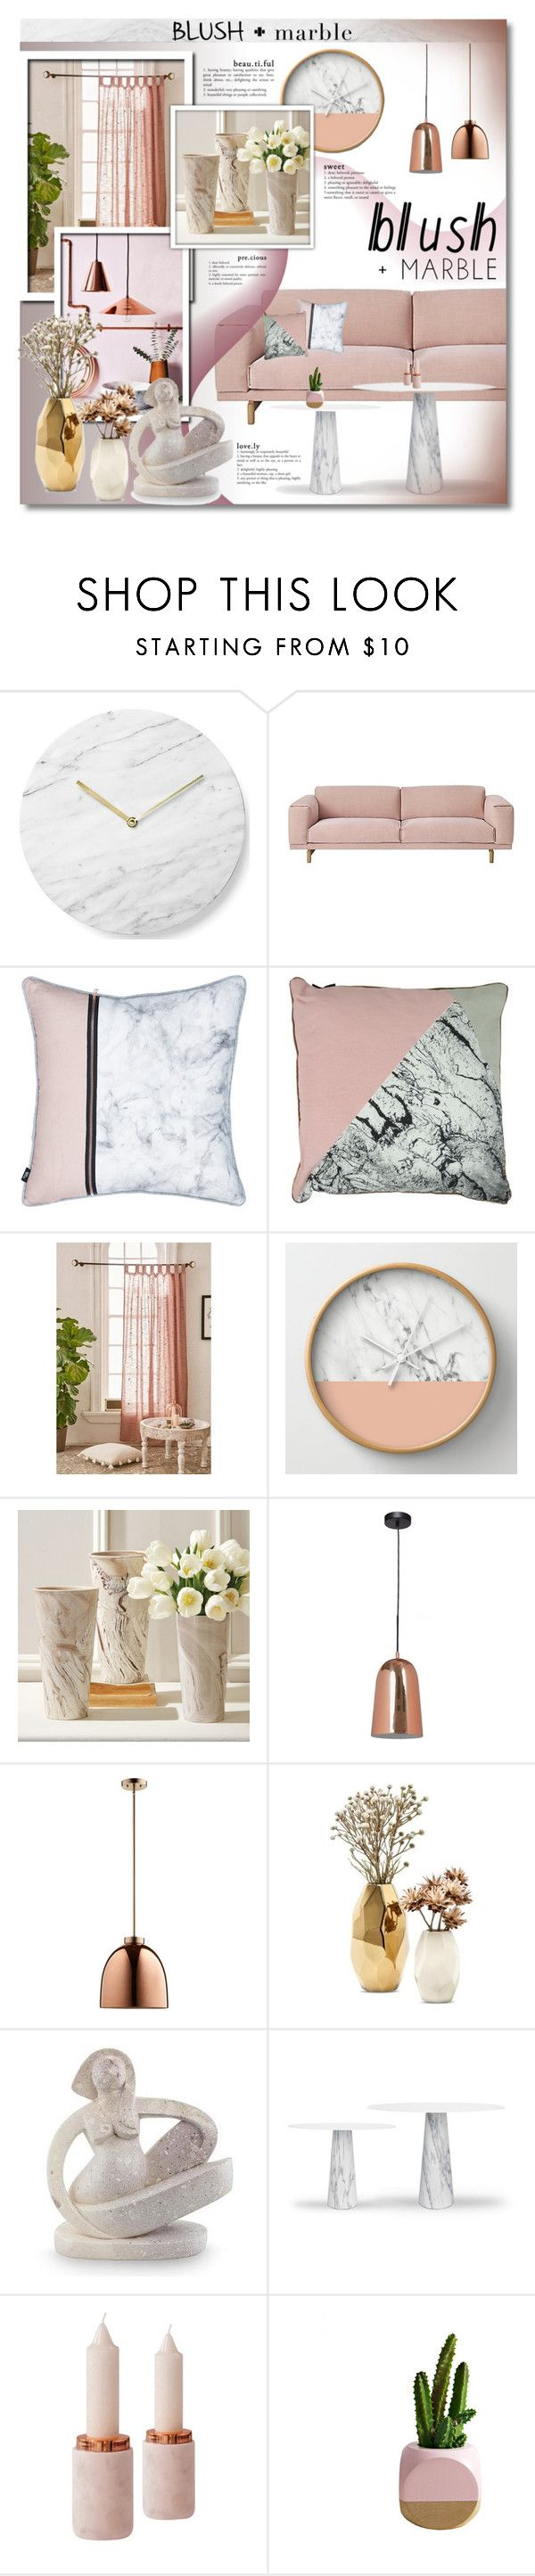 """""""Blush + Marble"""" by anitadz ❤ liked on Polyvore featuring interior, interiors, interior design, home, home decor, interior decorating, Menu, Muuto, Urban Outfitters and Tozai"""